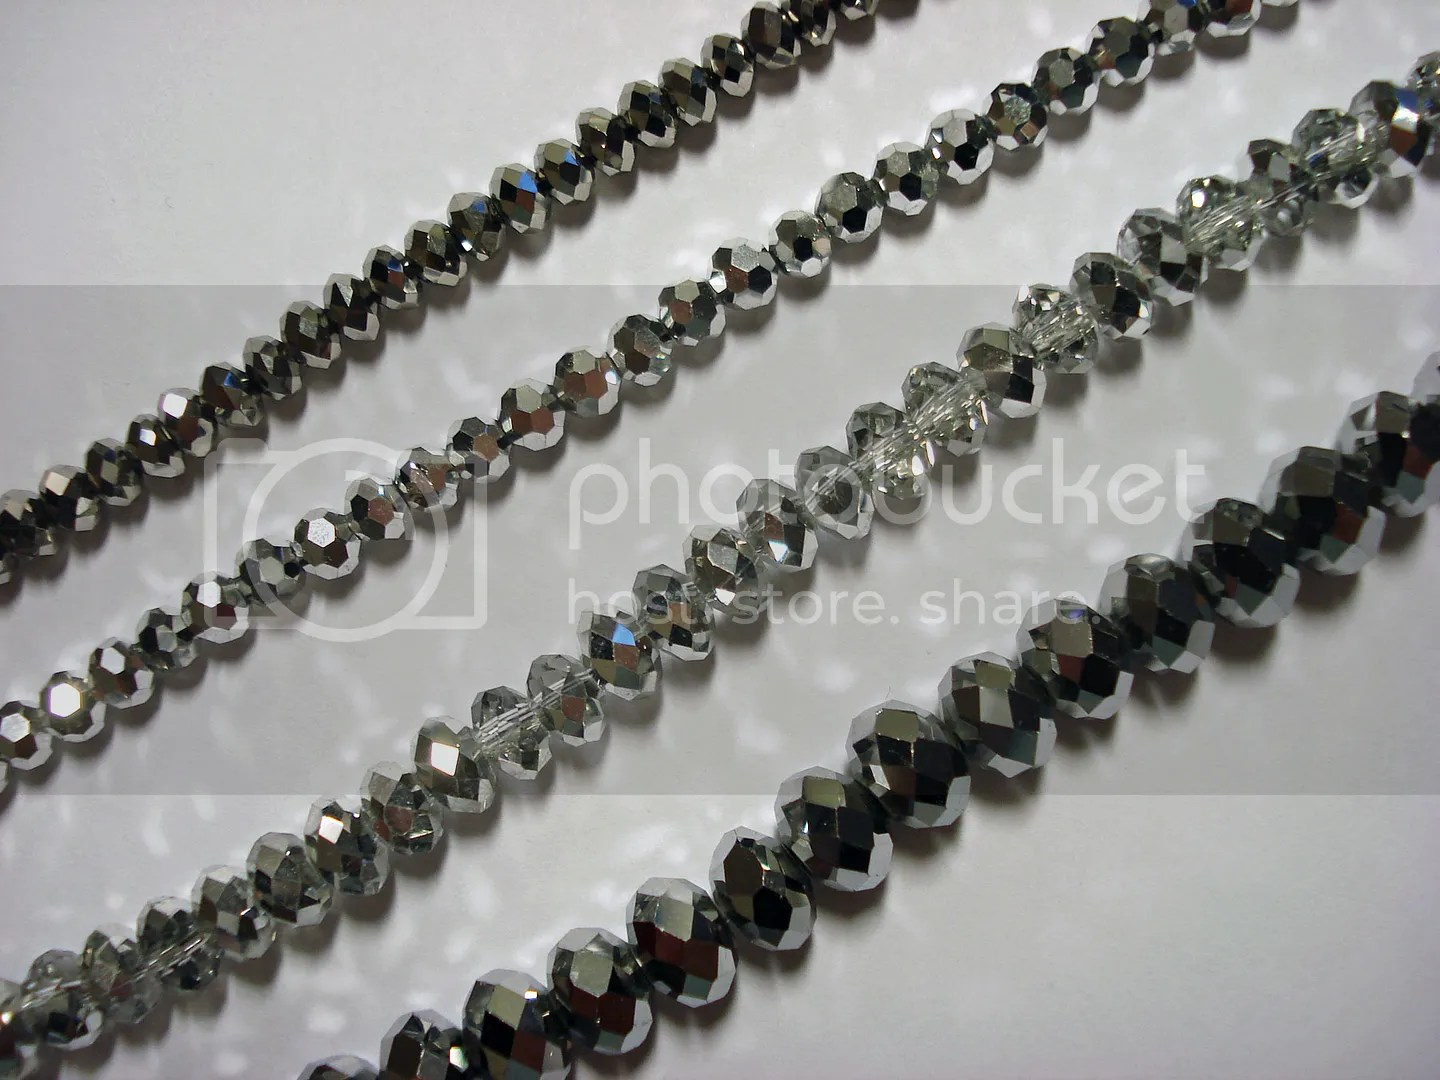 Auntie's beads Silver Chinese Crystal Rondelle Bead Strands